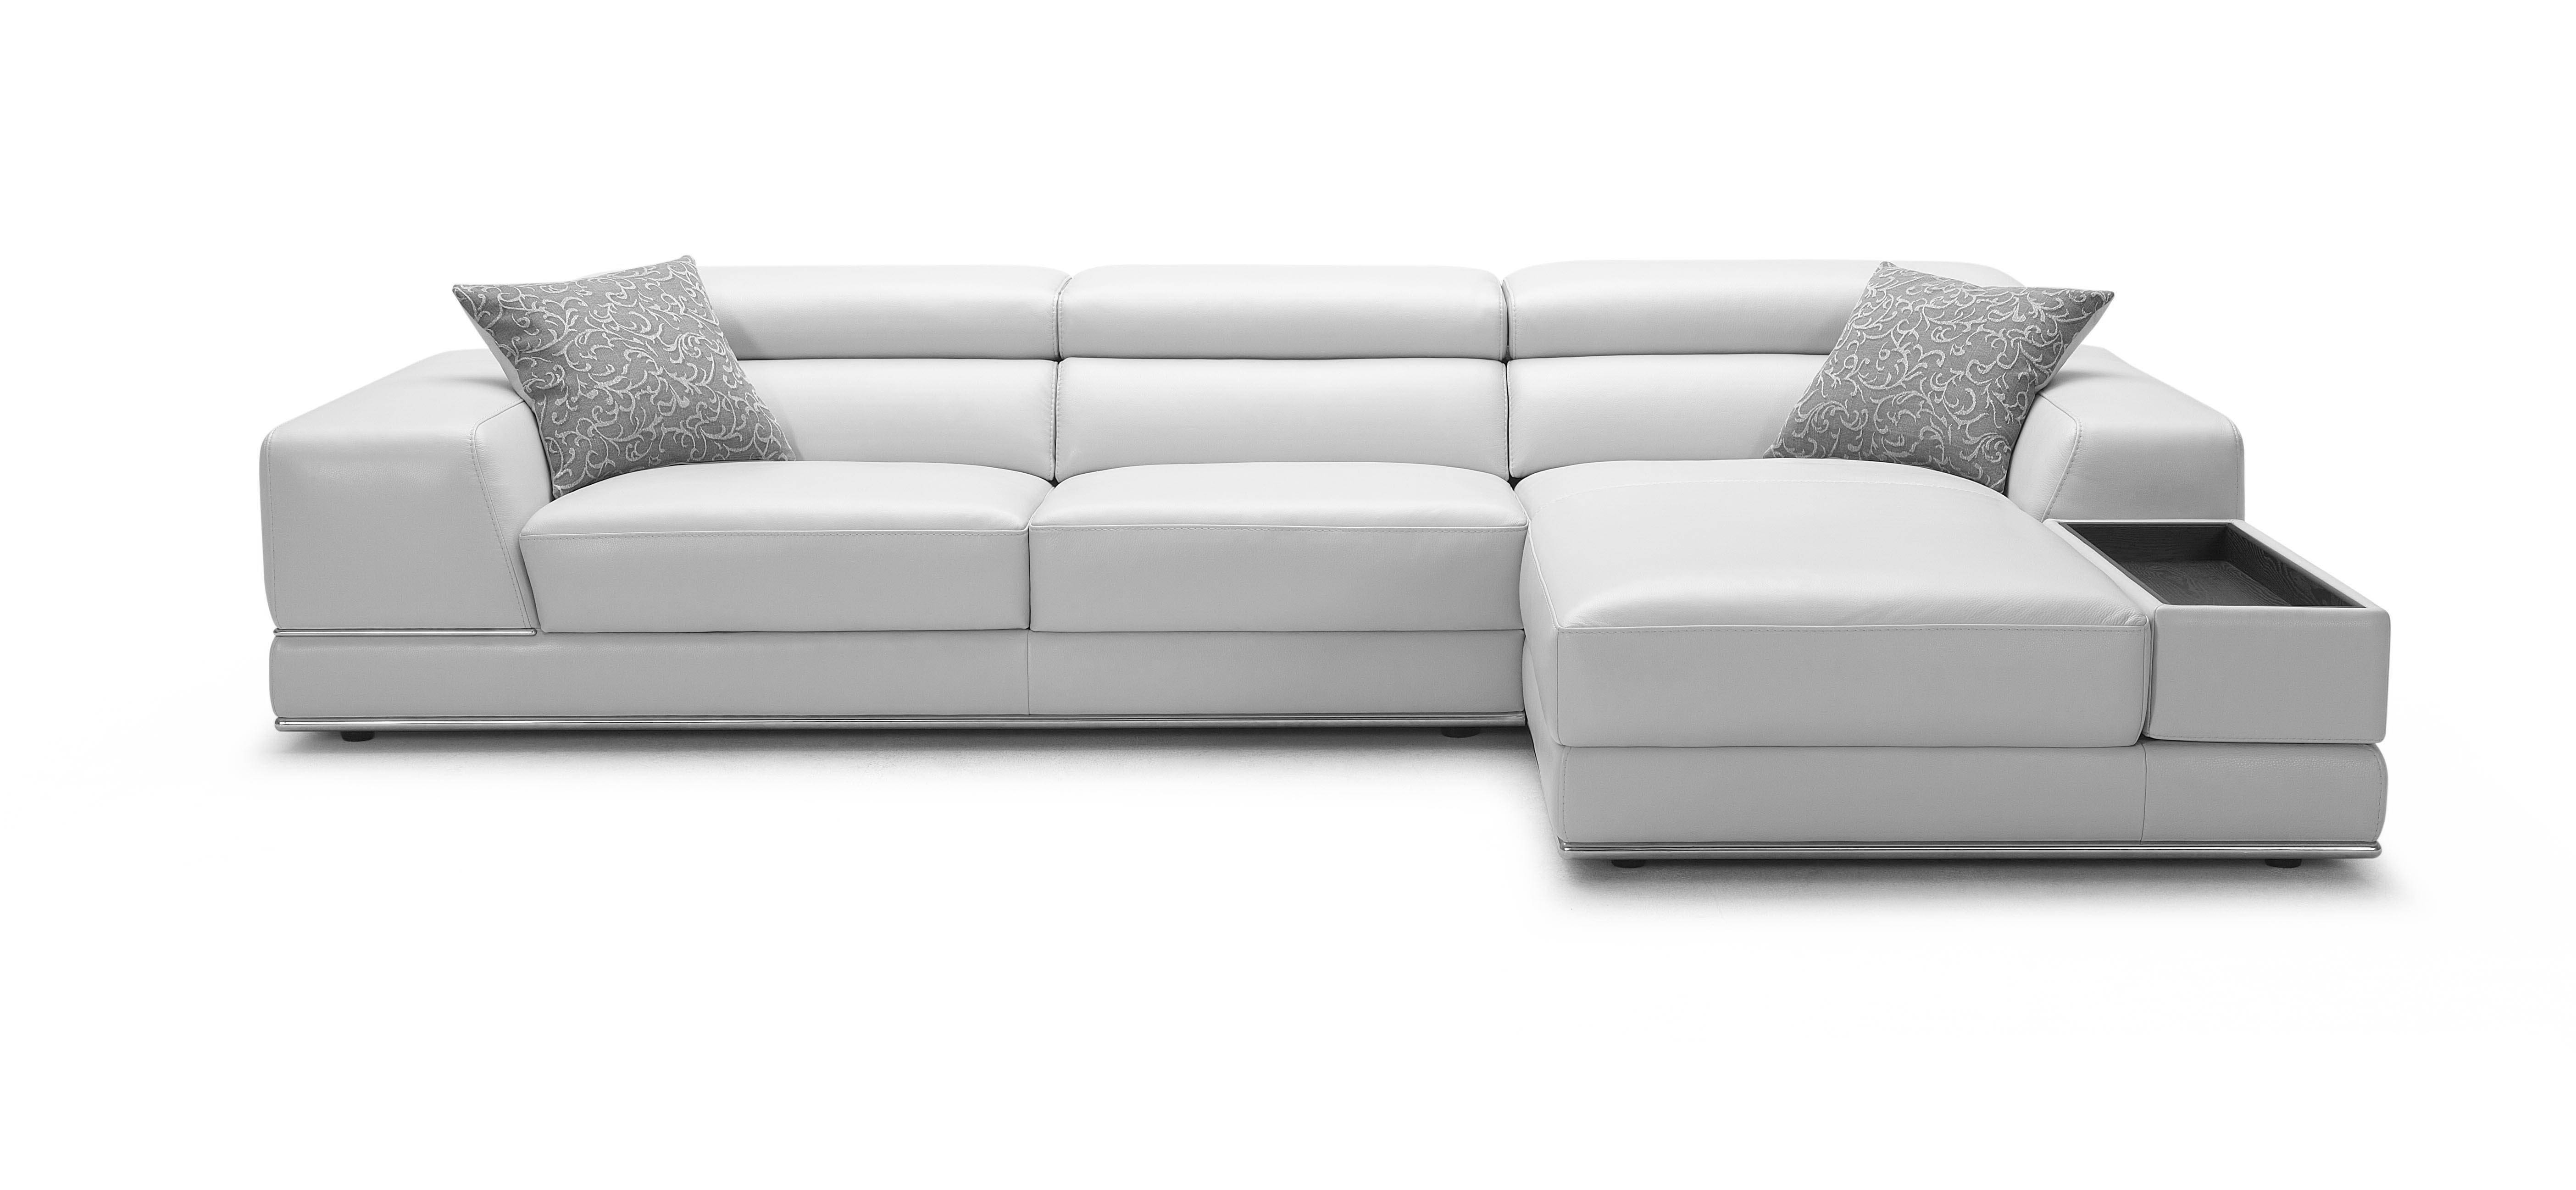 Sofas Center : Leather Sofa Sectional Seattle Sectionals For Small with White Sectional Sofa for Sale (Image 22 of 30)